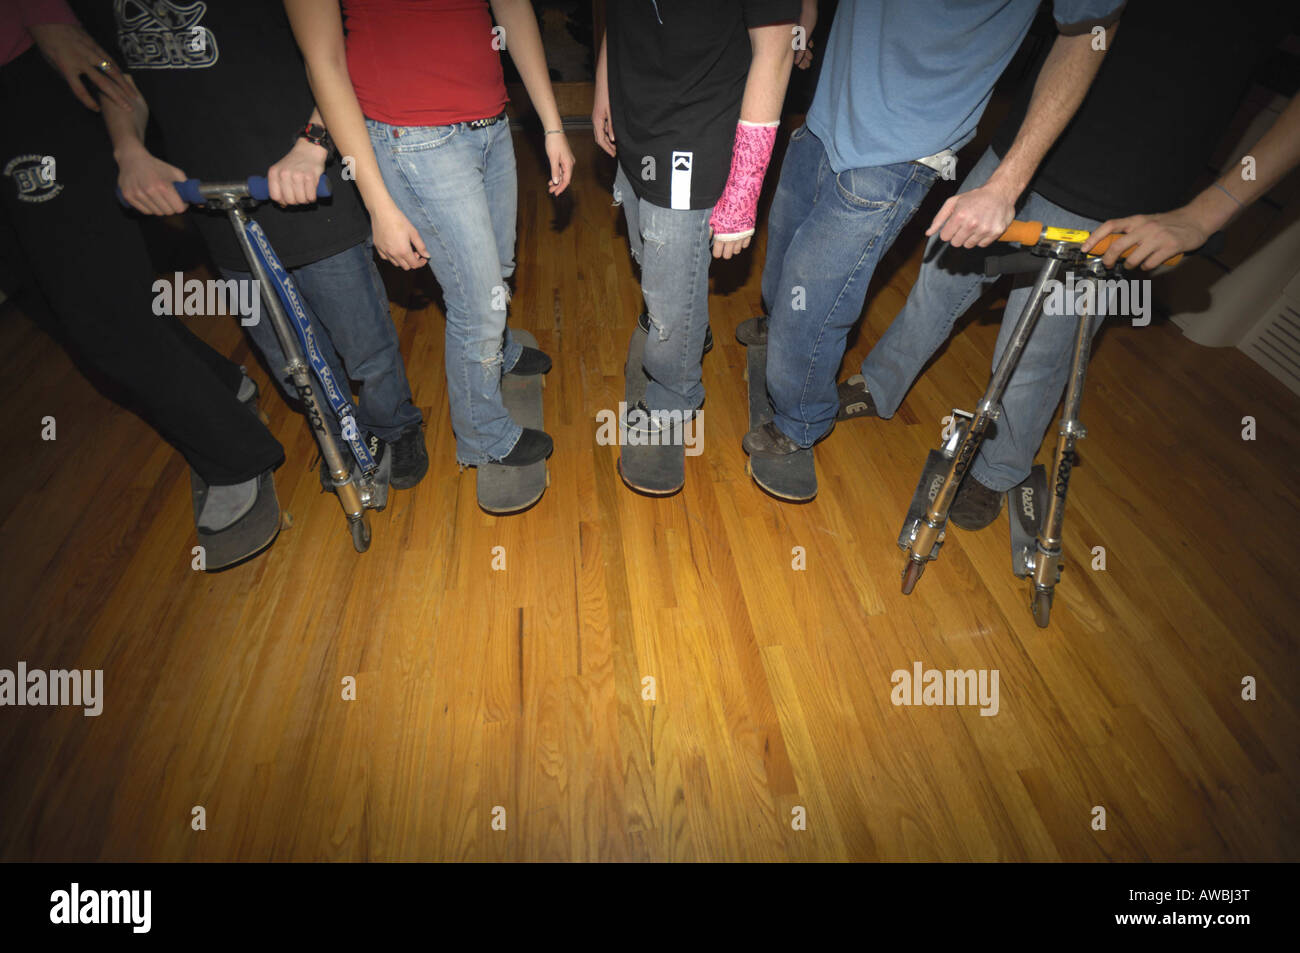 Teenagers standing on skateboards and skooters indoors - Stock Image